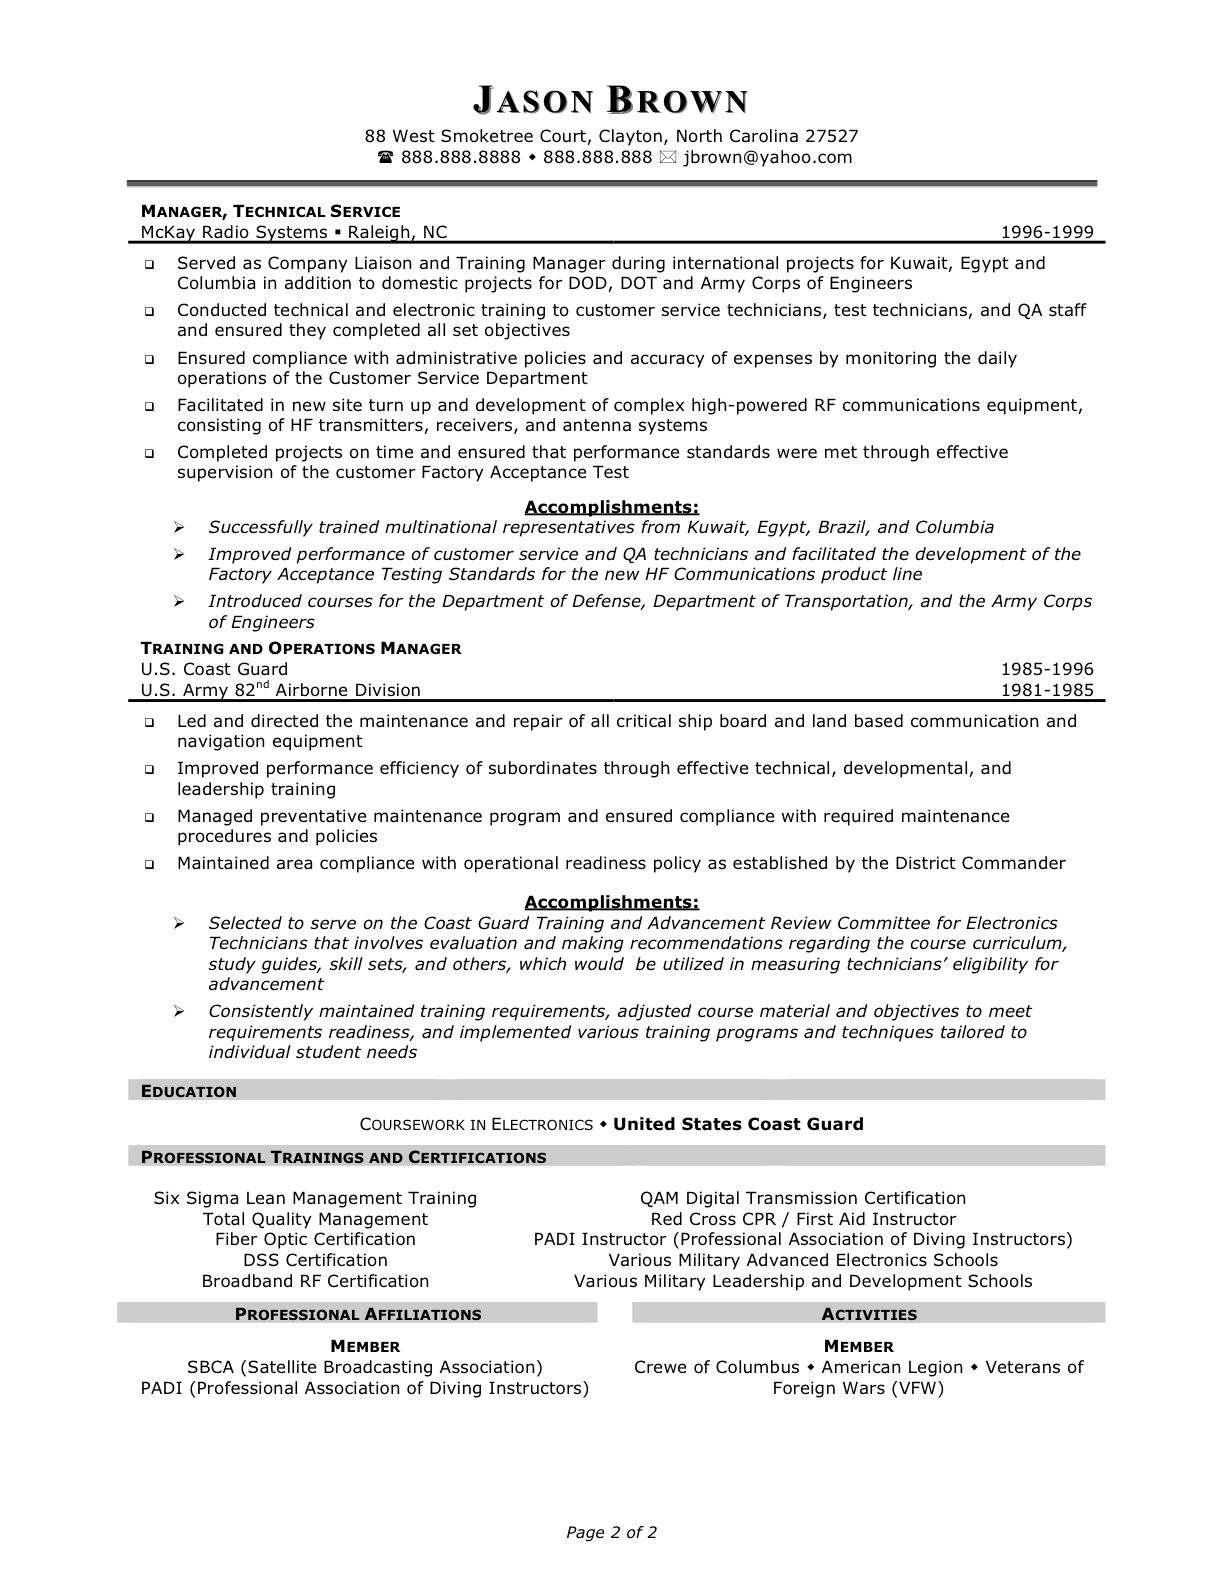 Enterprise Management Trainee Program Resume  HttpWww